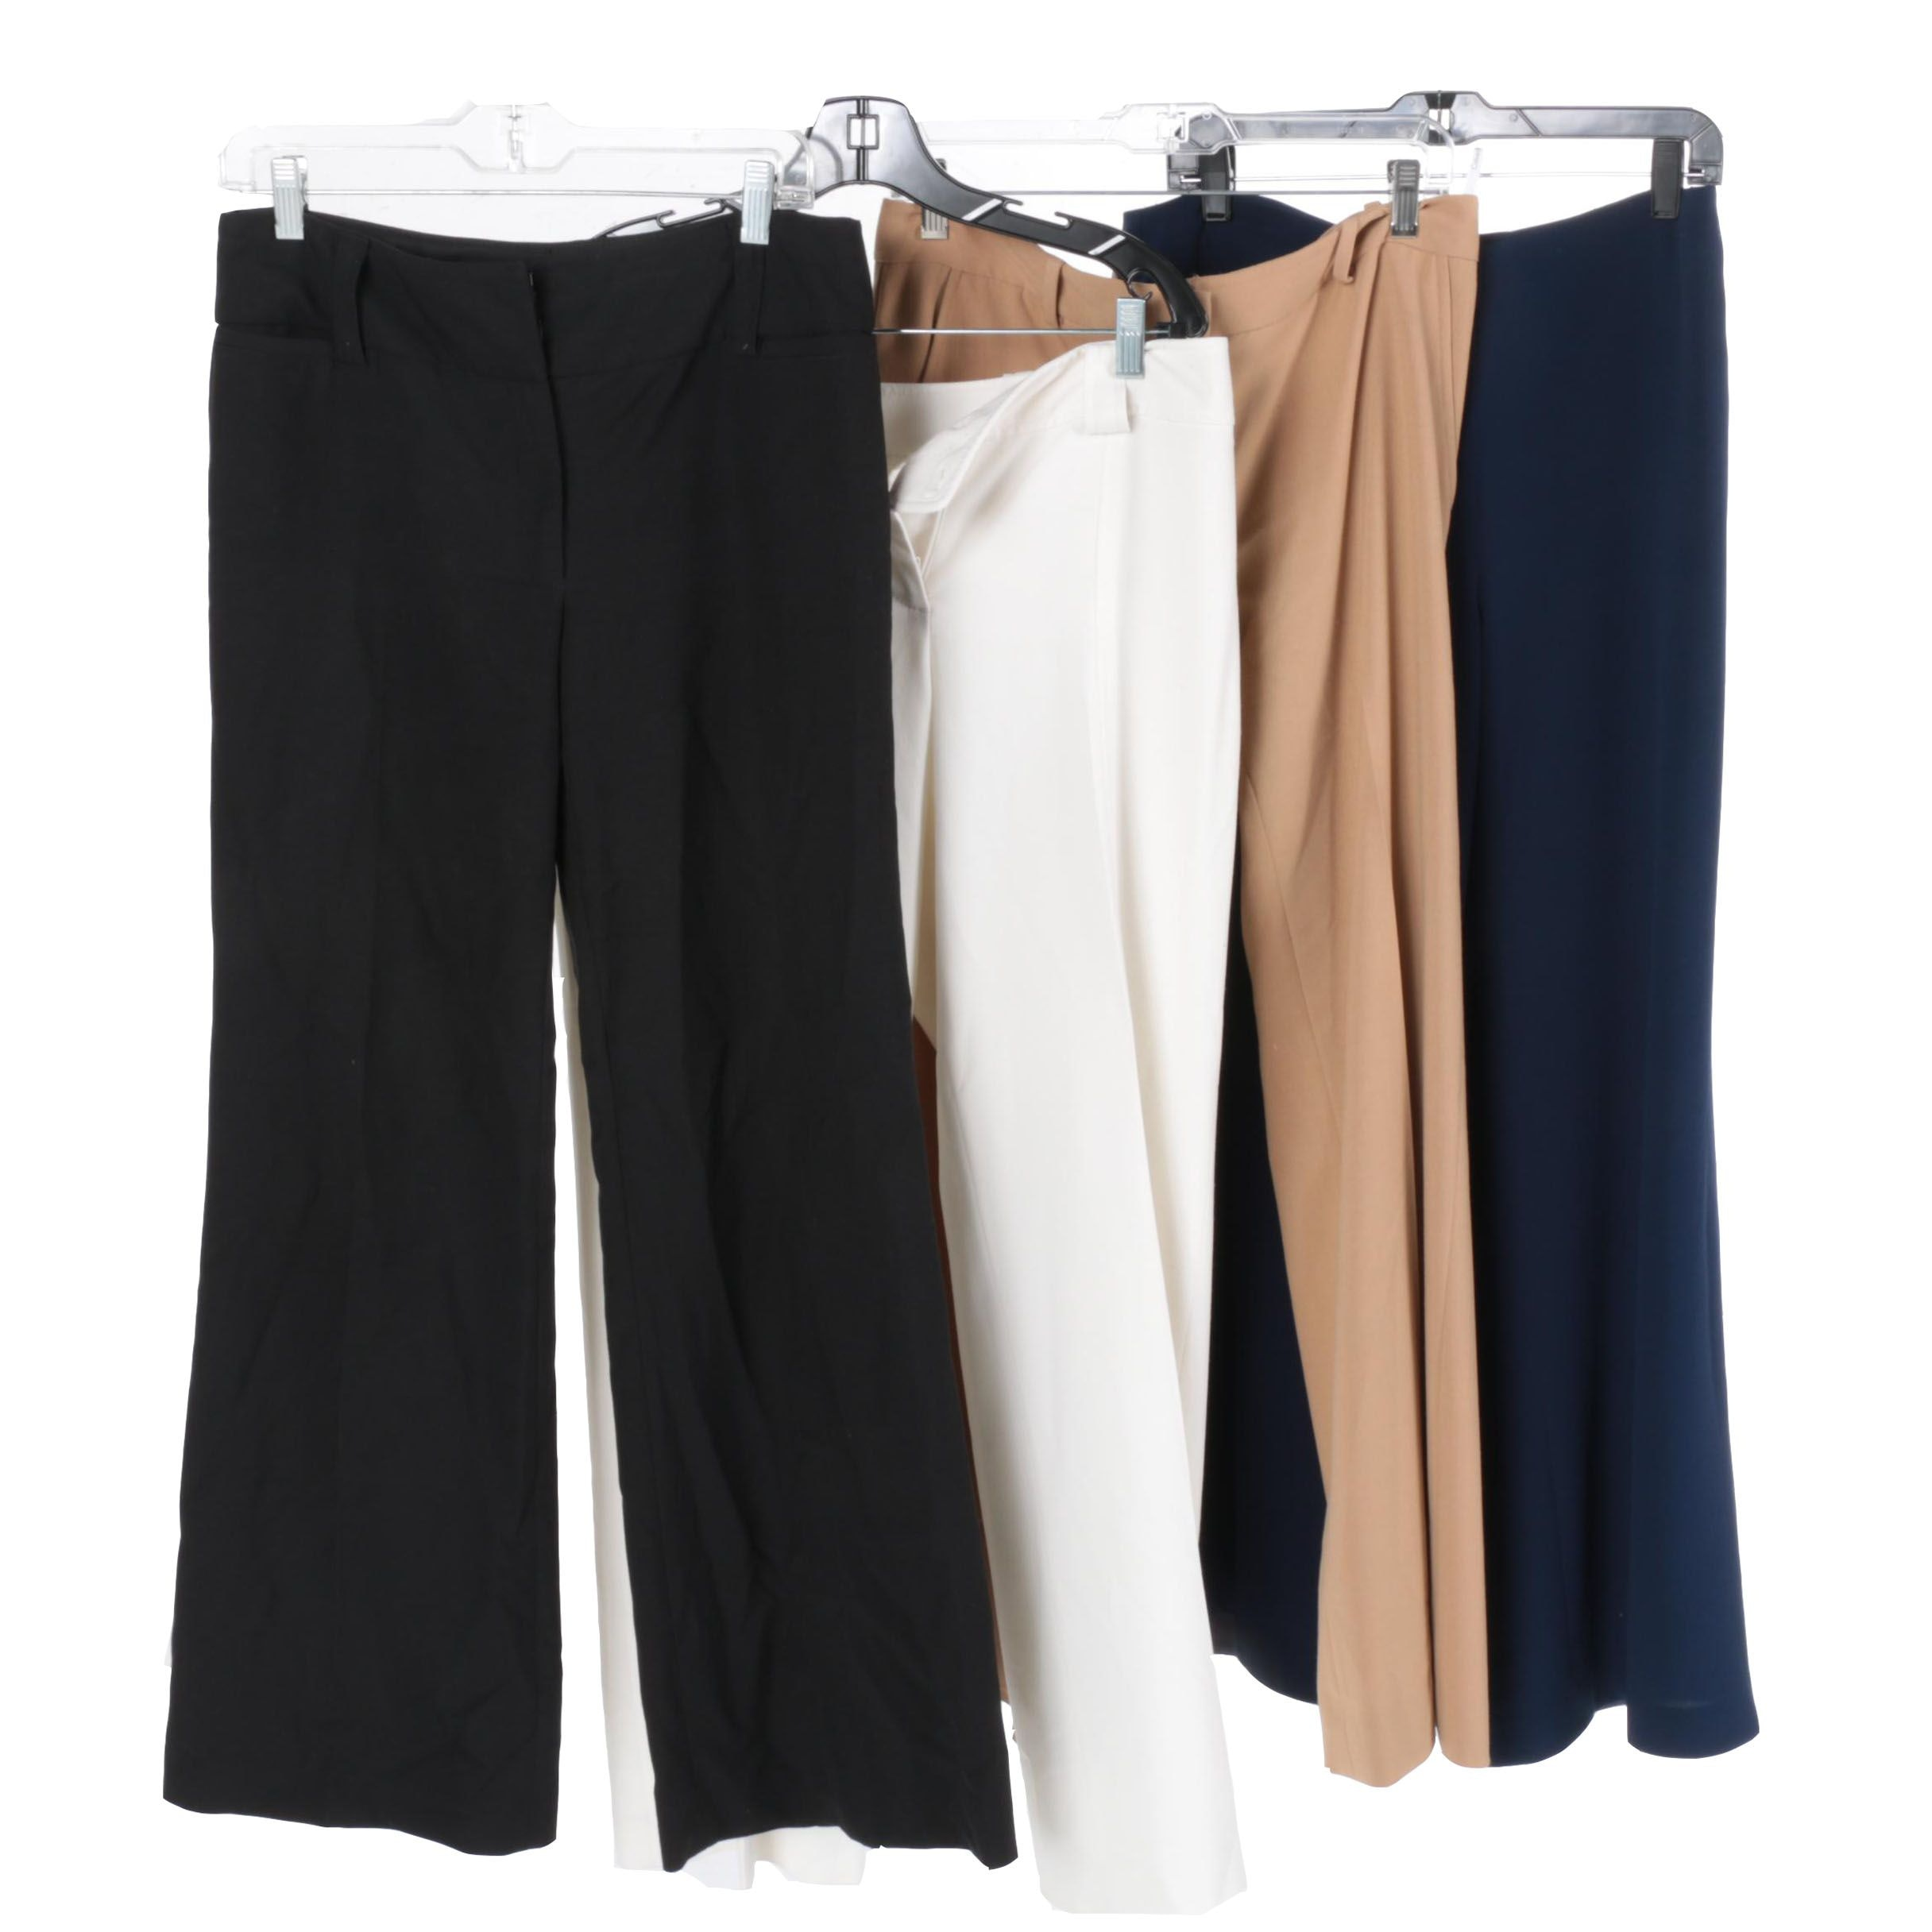 Women's Pants Including Calvin Klein